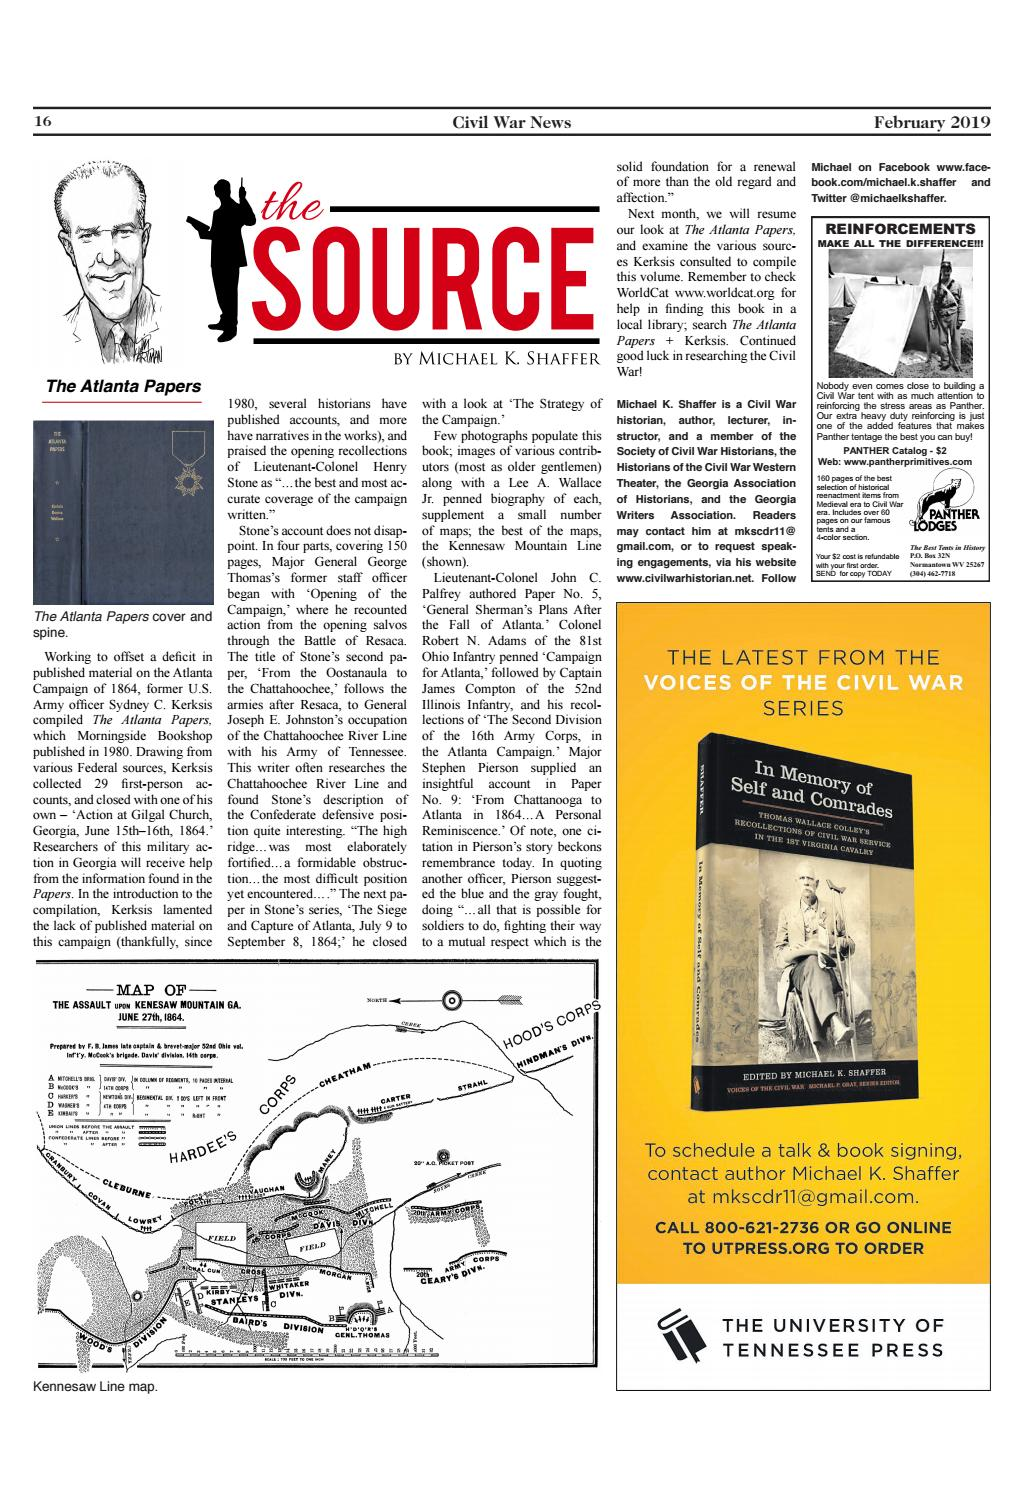 'The Source' February 2019